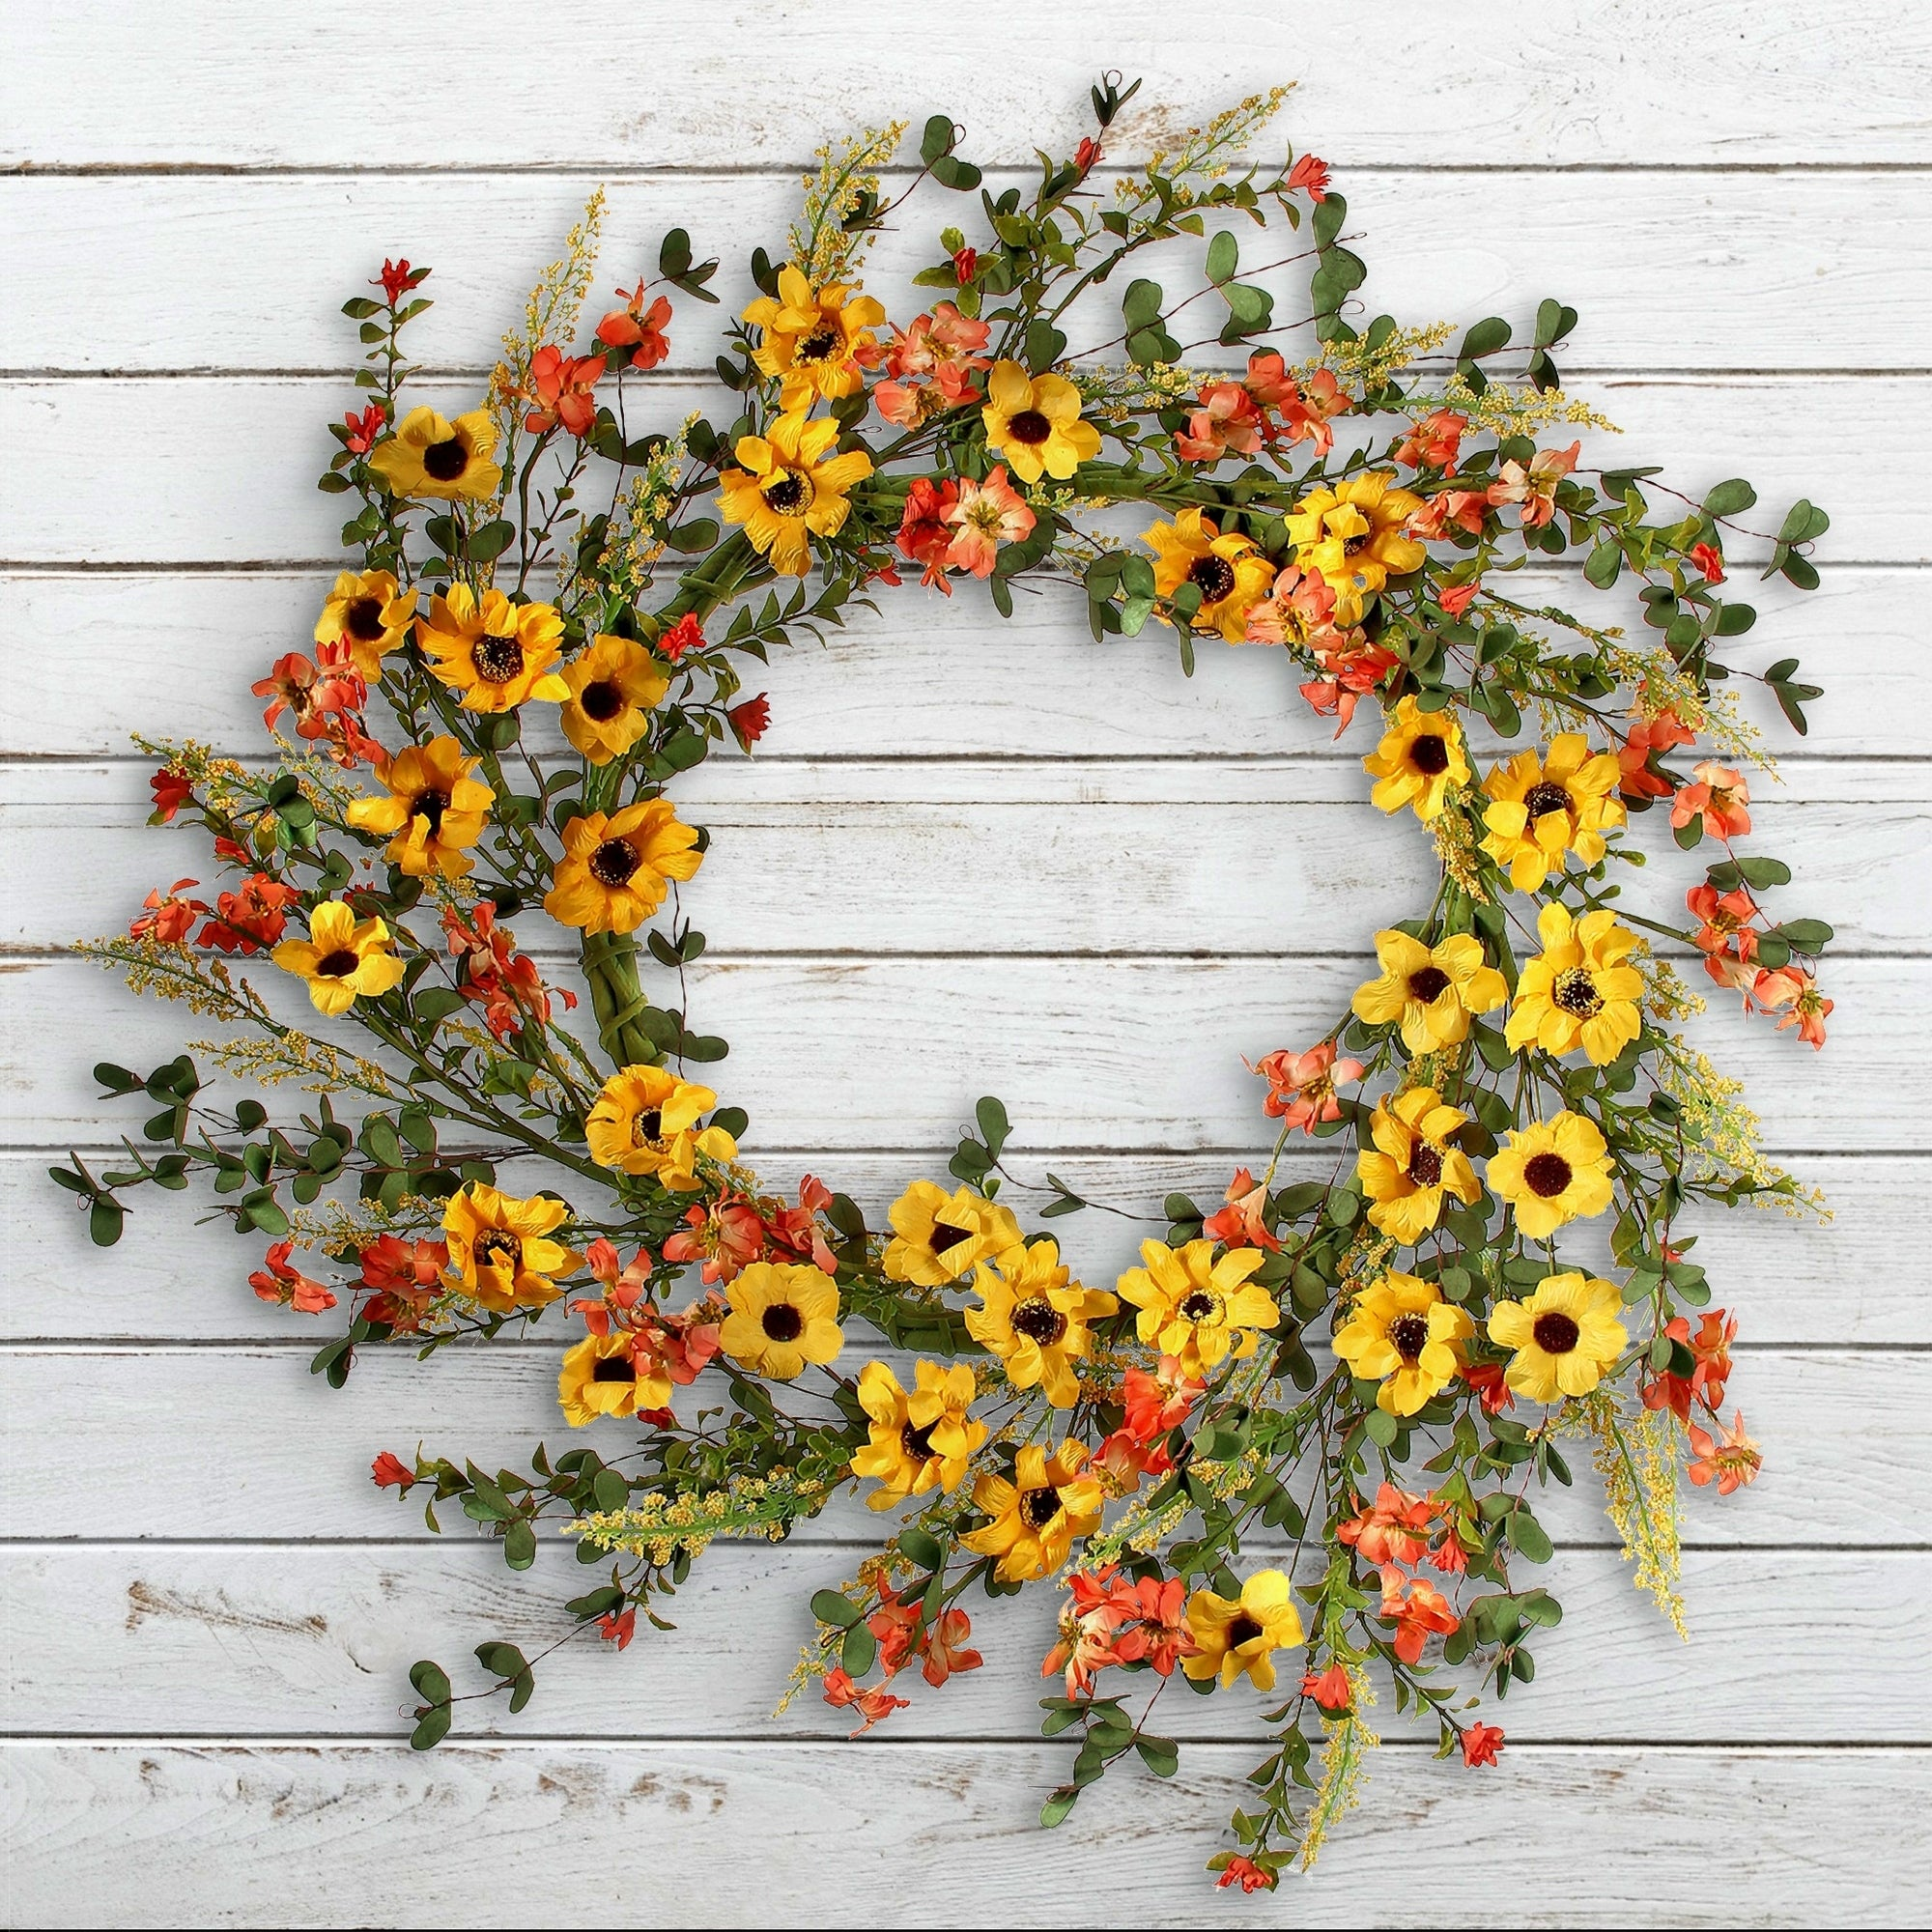 Aster/Primrose Wreath 22 (Yellow and Orange)